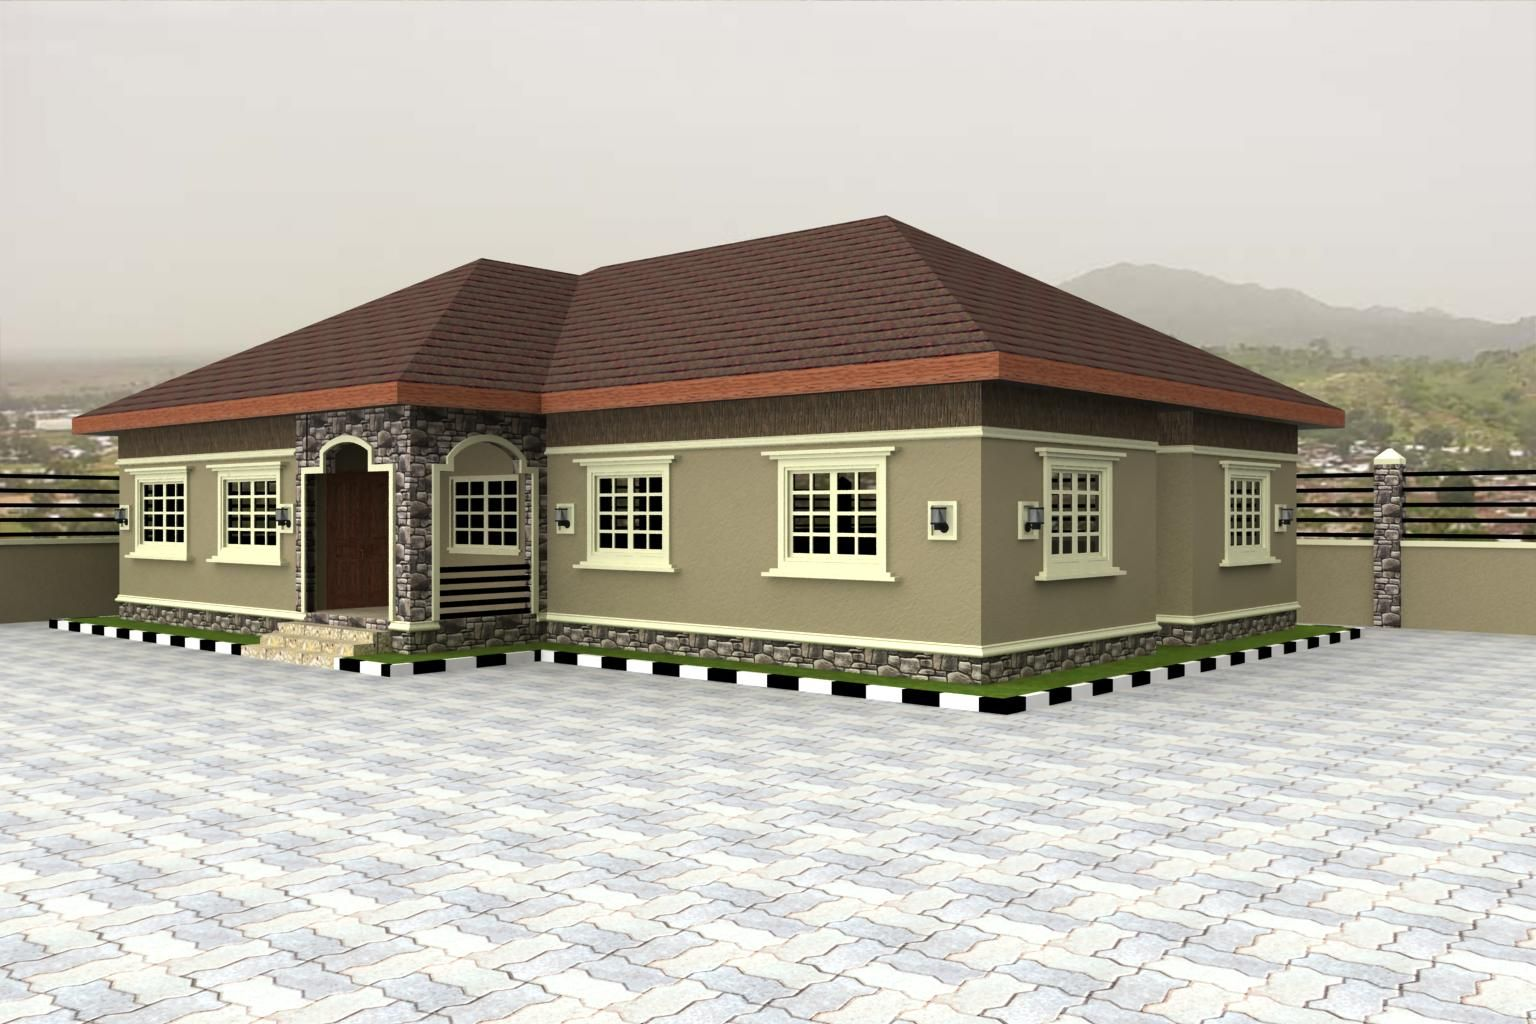 Home plans for bungalows in nigeria properties 4 nairaland for Bungalow building plans